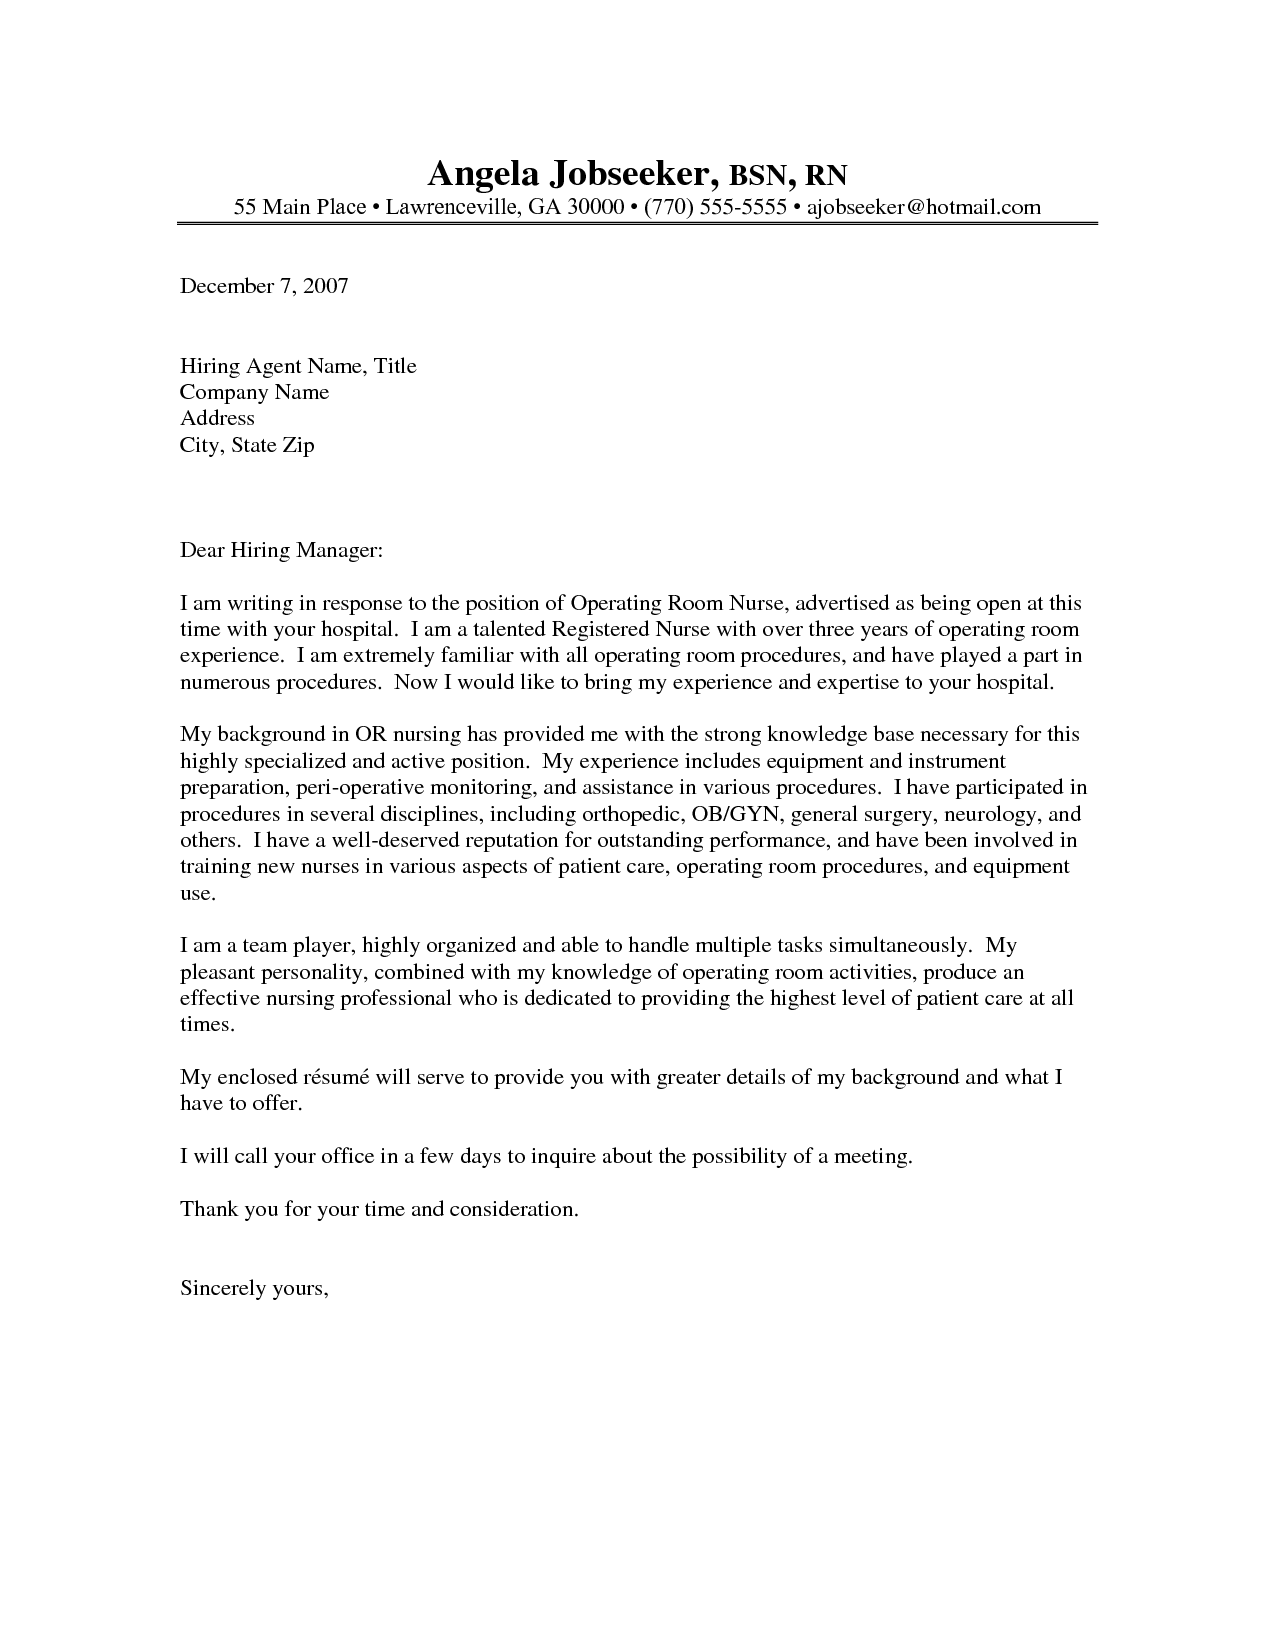 Oncology Nurse Resume Cover Letter - Http://www.resumecareer.info/oncology- Nurse-Resume-Cover-Letter-2/